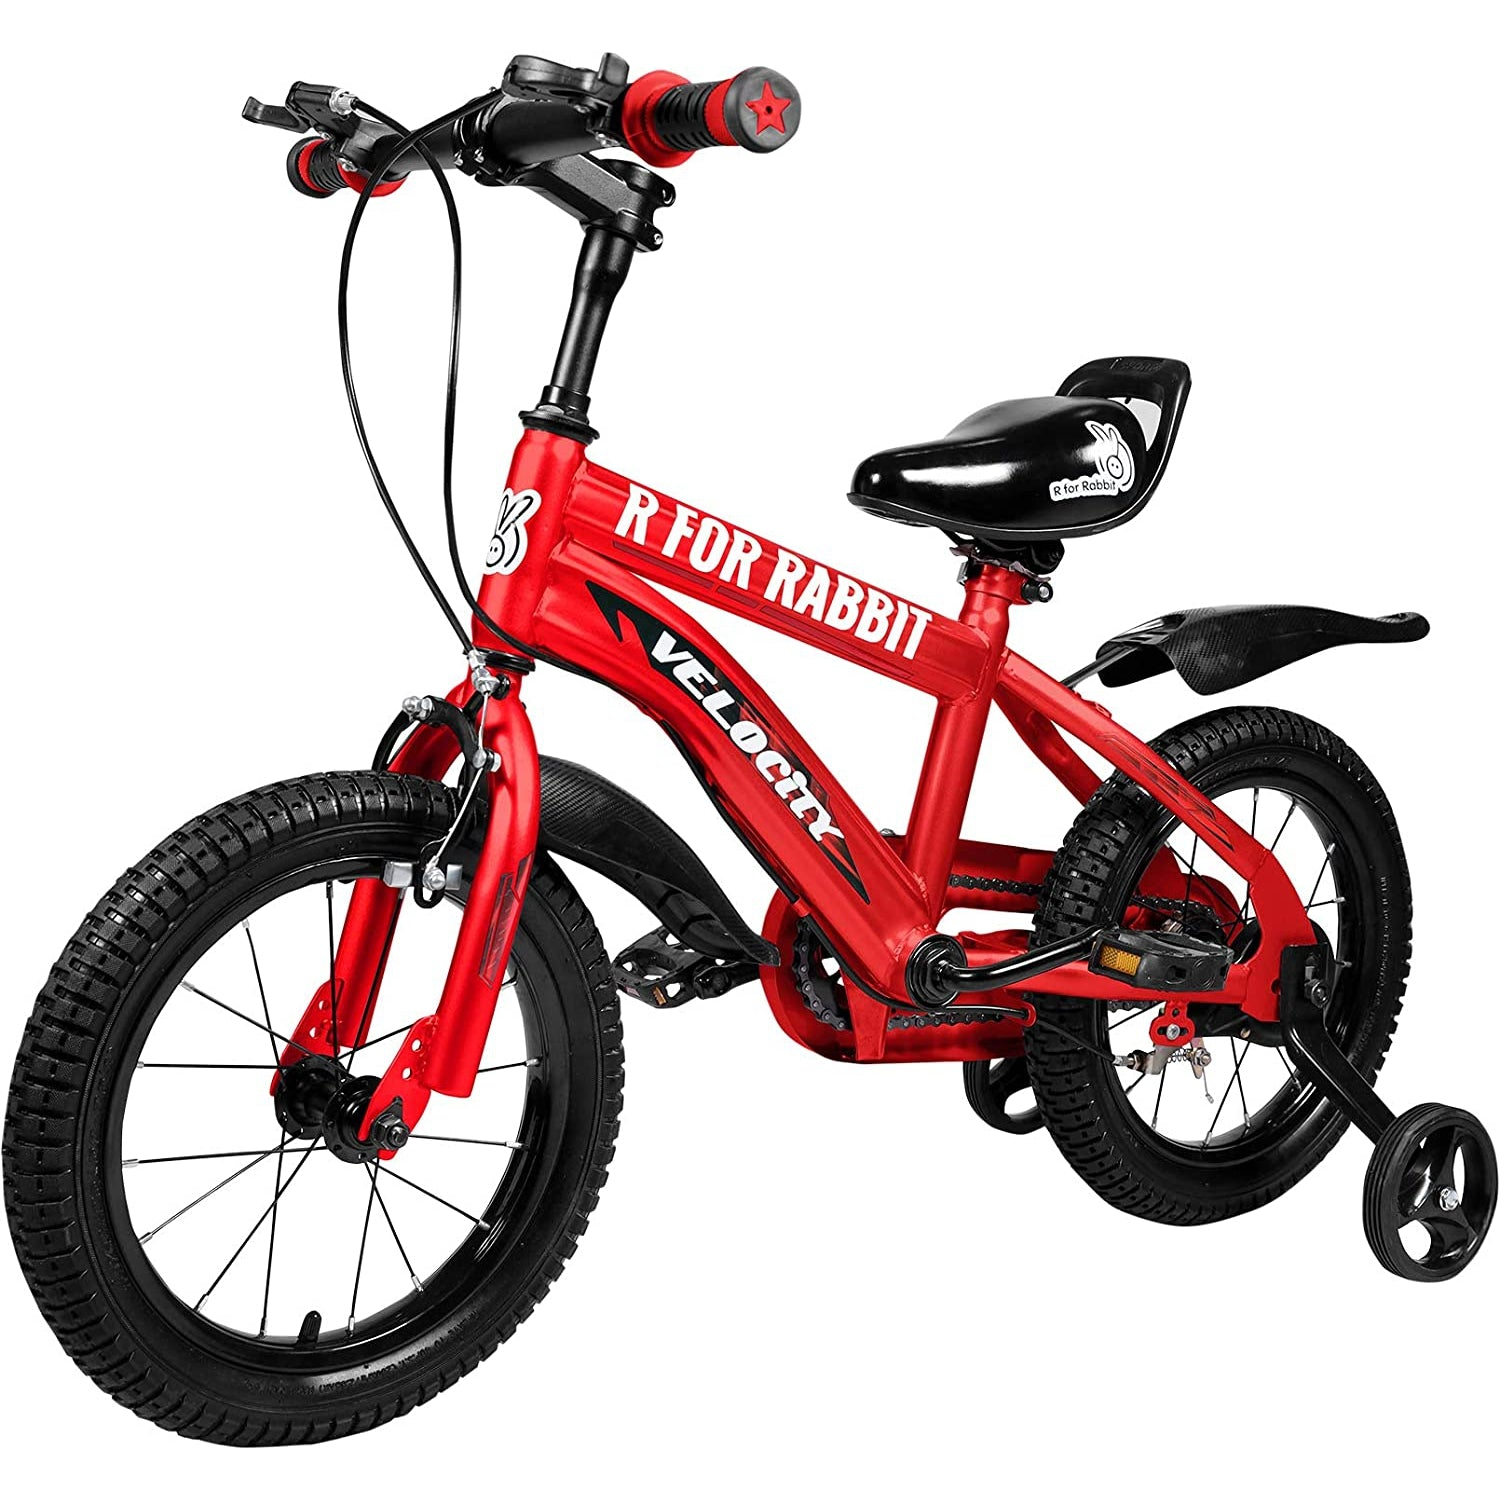 R for Rabbit Velocity 14 inch Bicycle for Kids of 3 to 5 Years Age for Boys and Girls